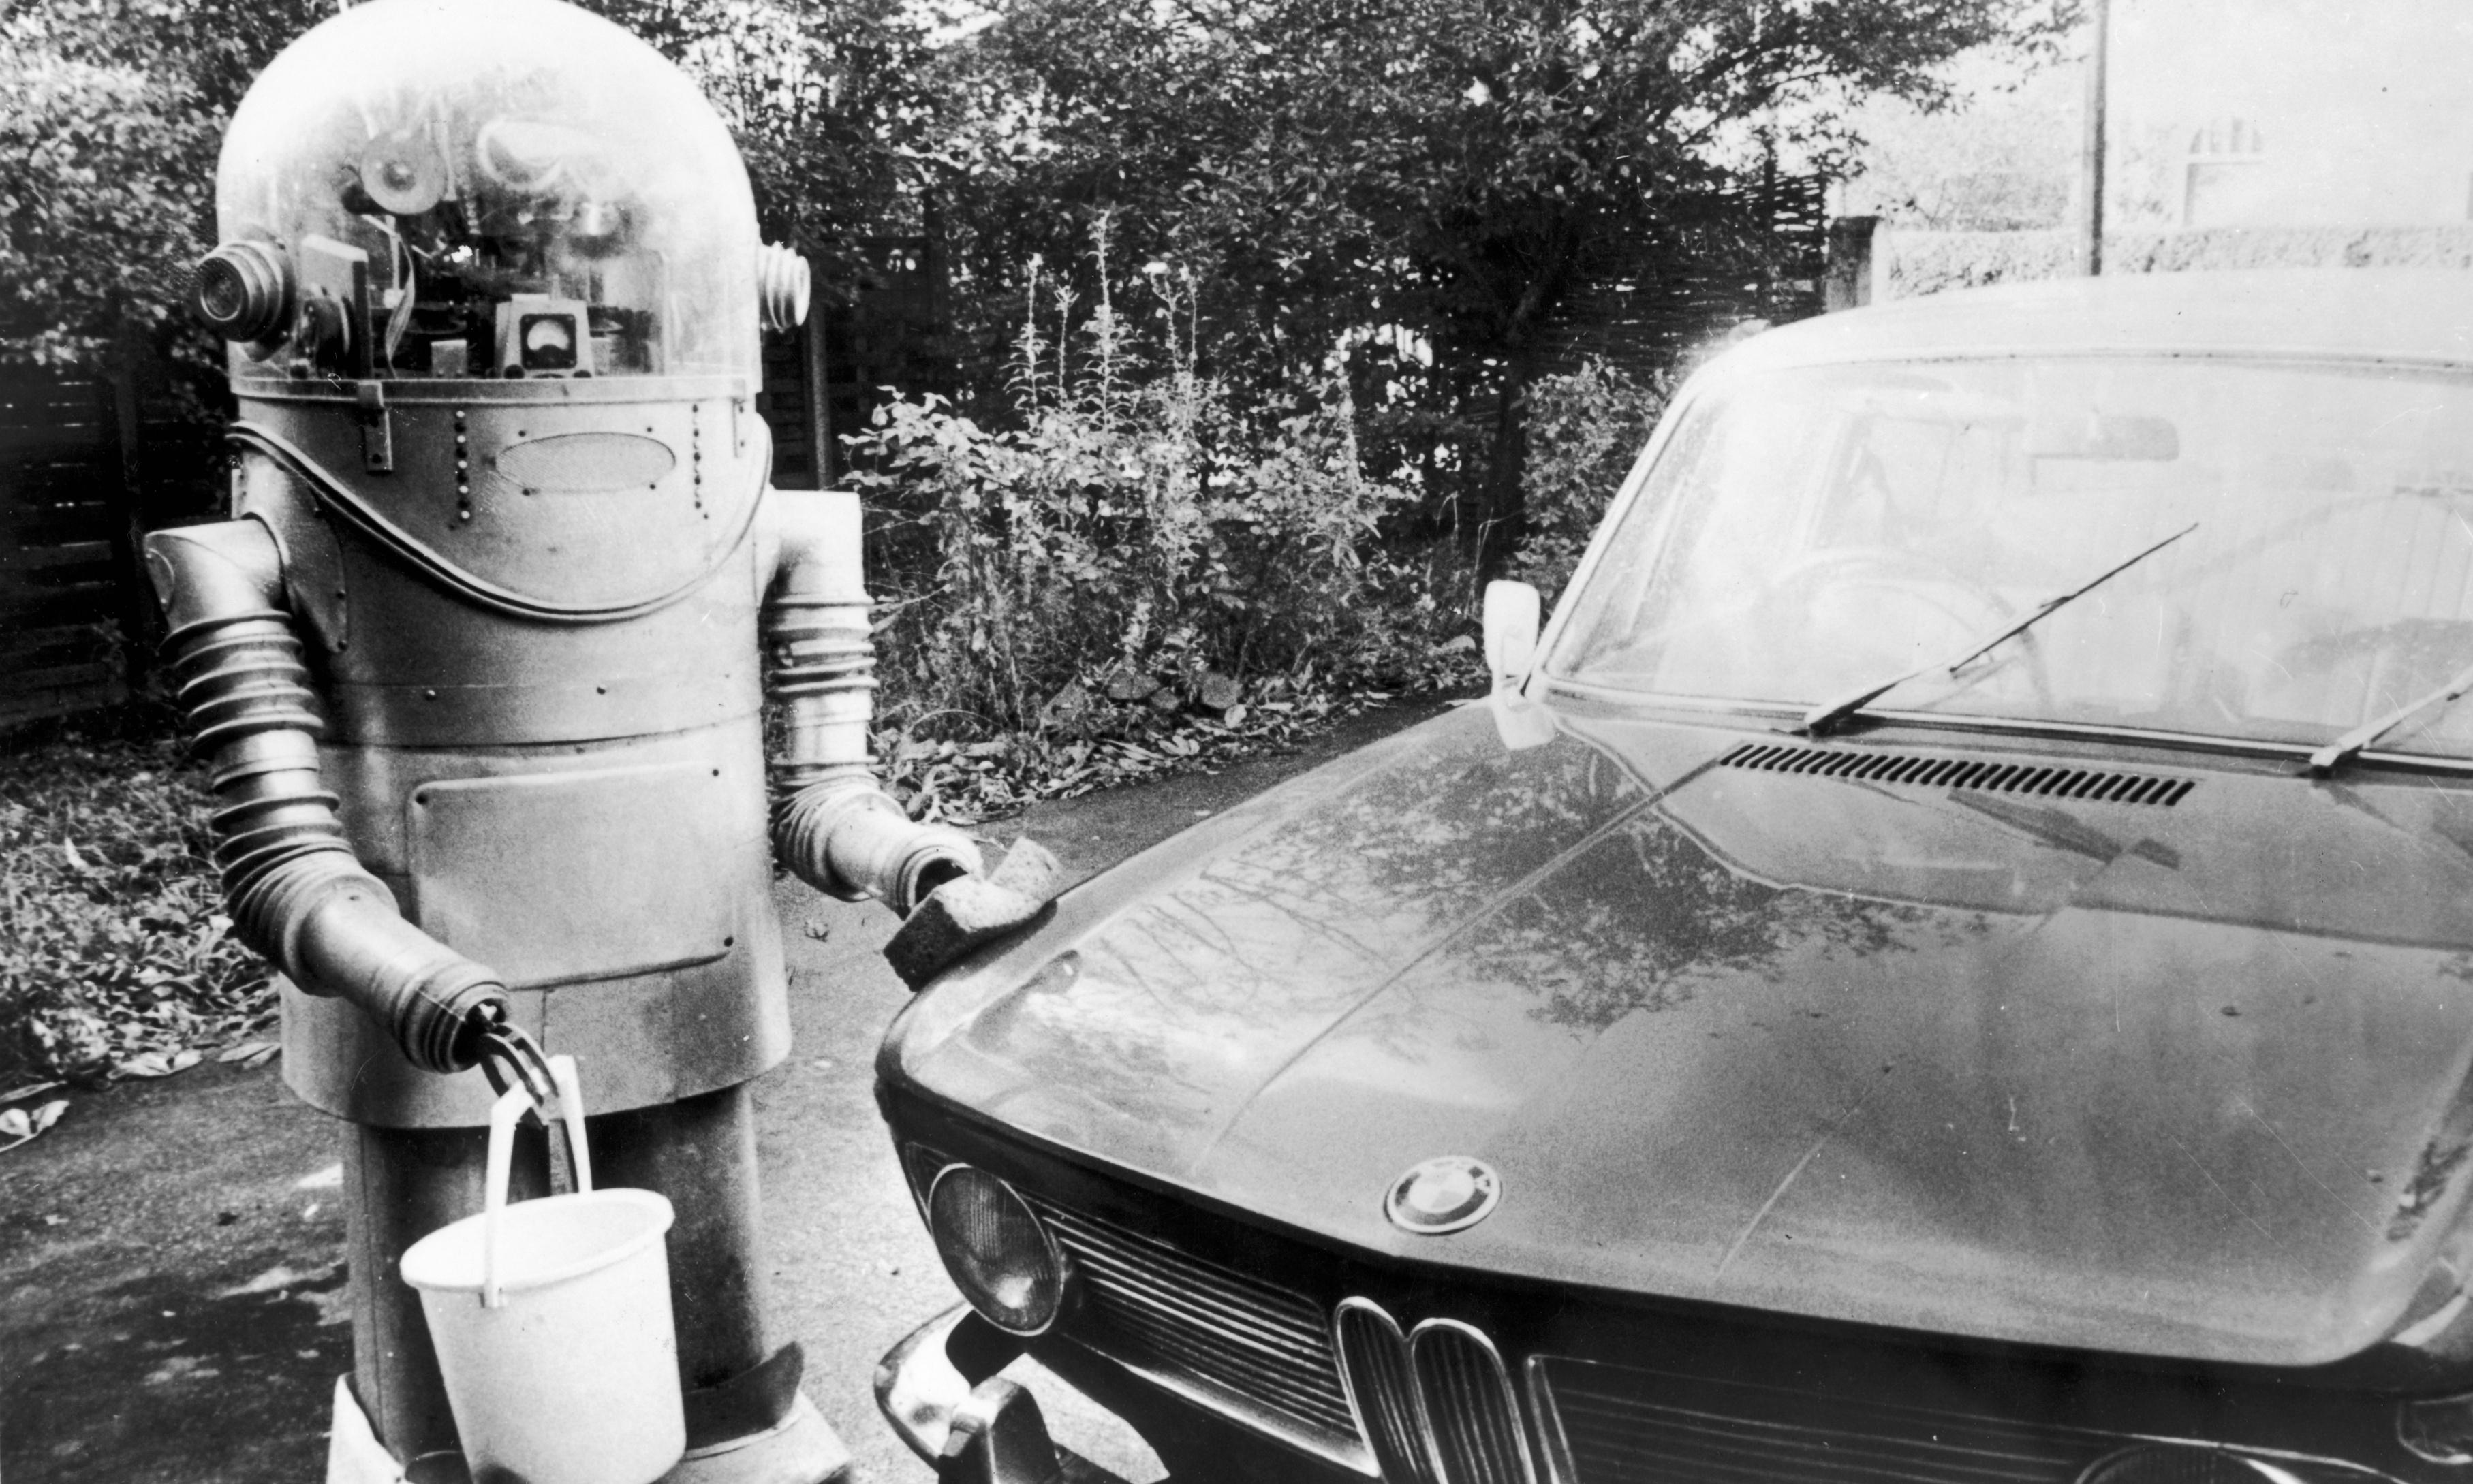 Robot life of the future – archive, 11 September 1969